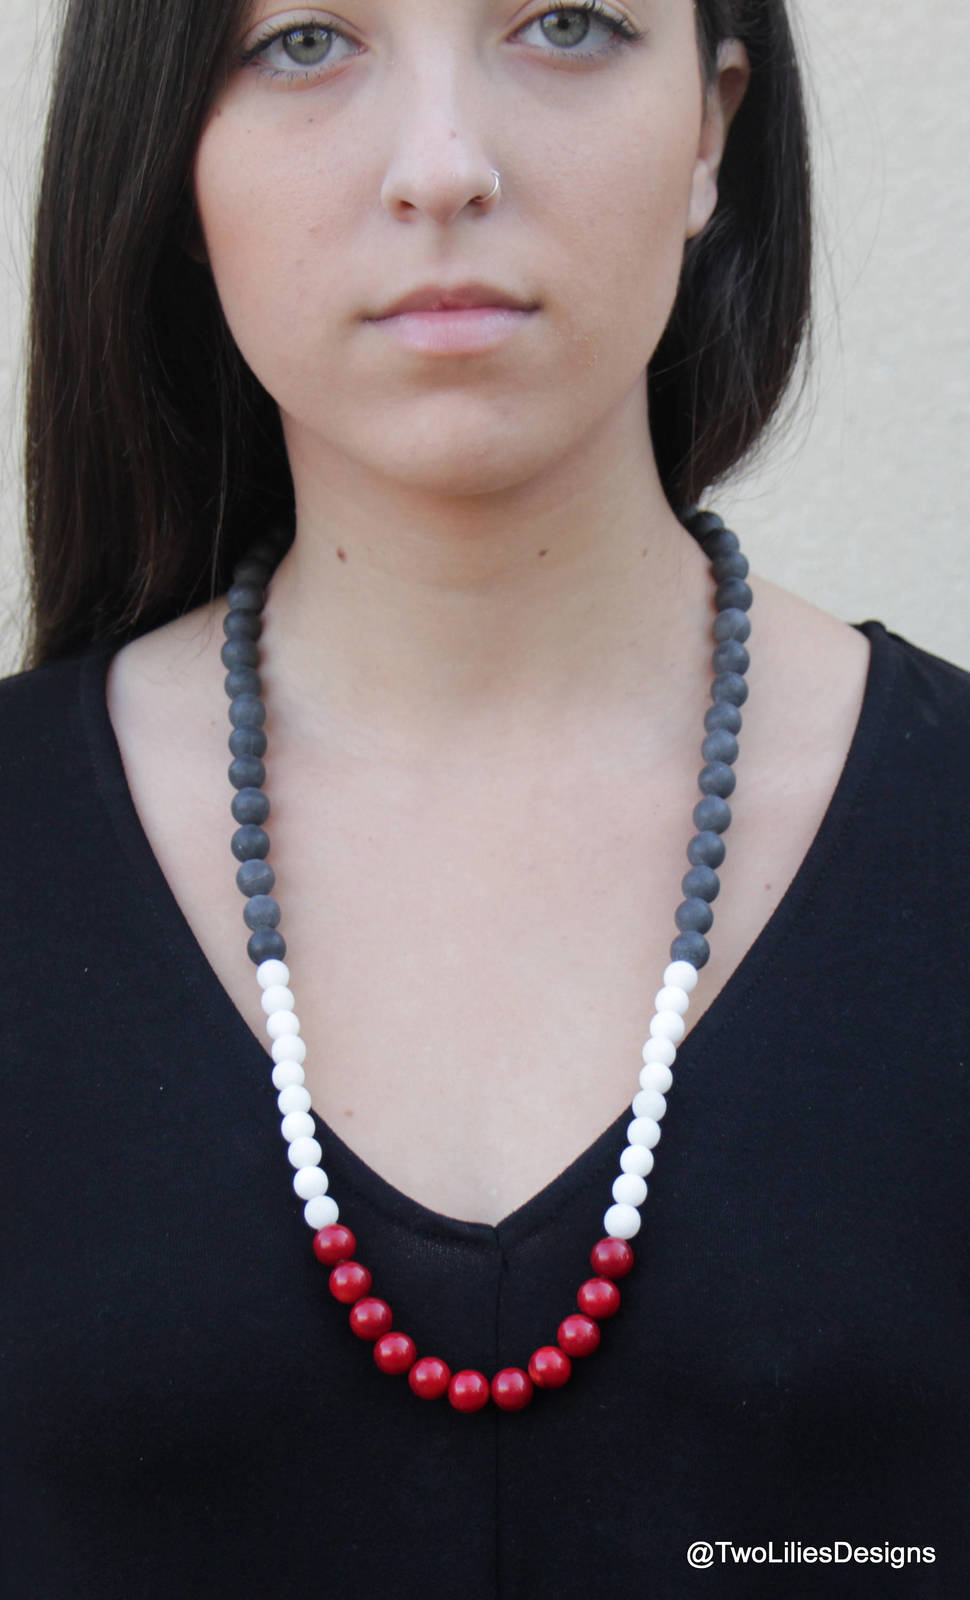 Long Beaded Necklace, Coral and Ice Quartz beads, Modern necklace with large bea